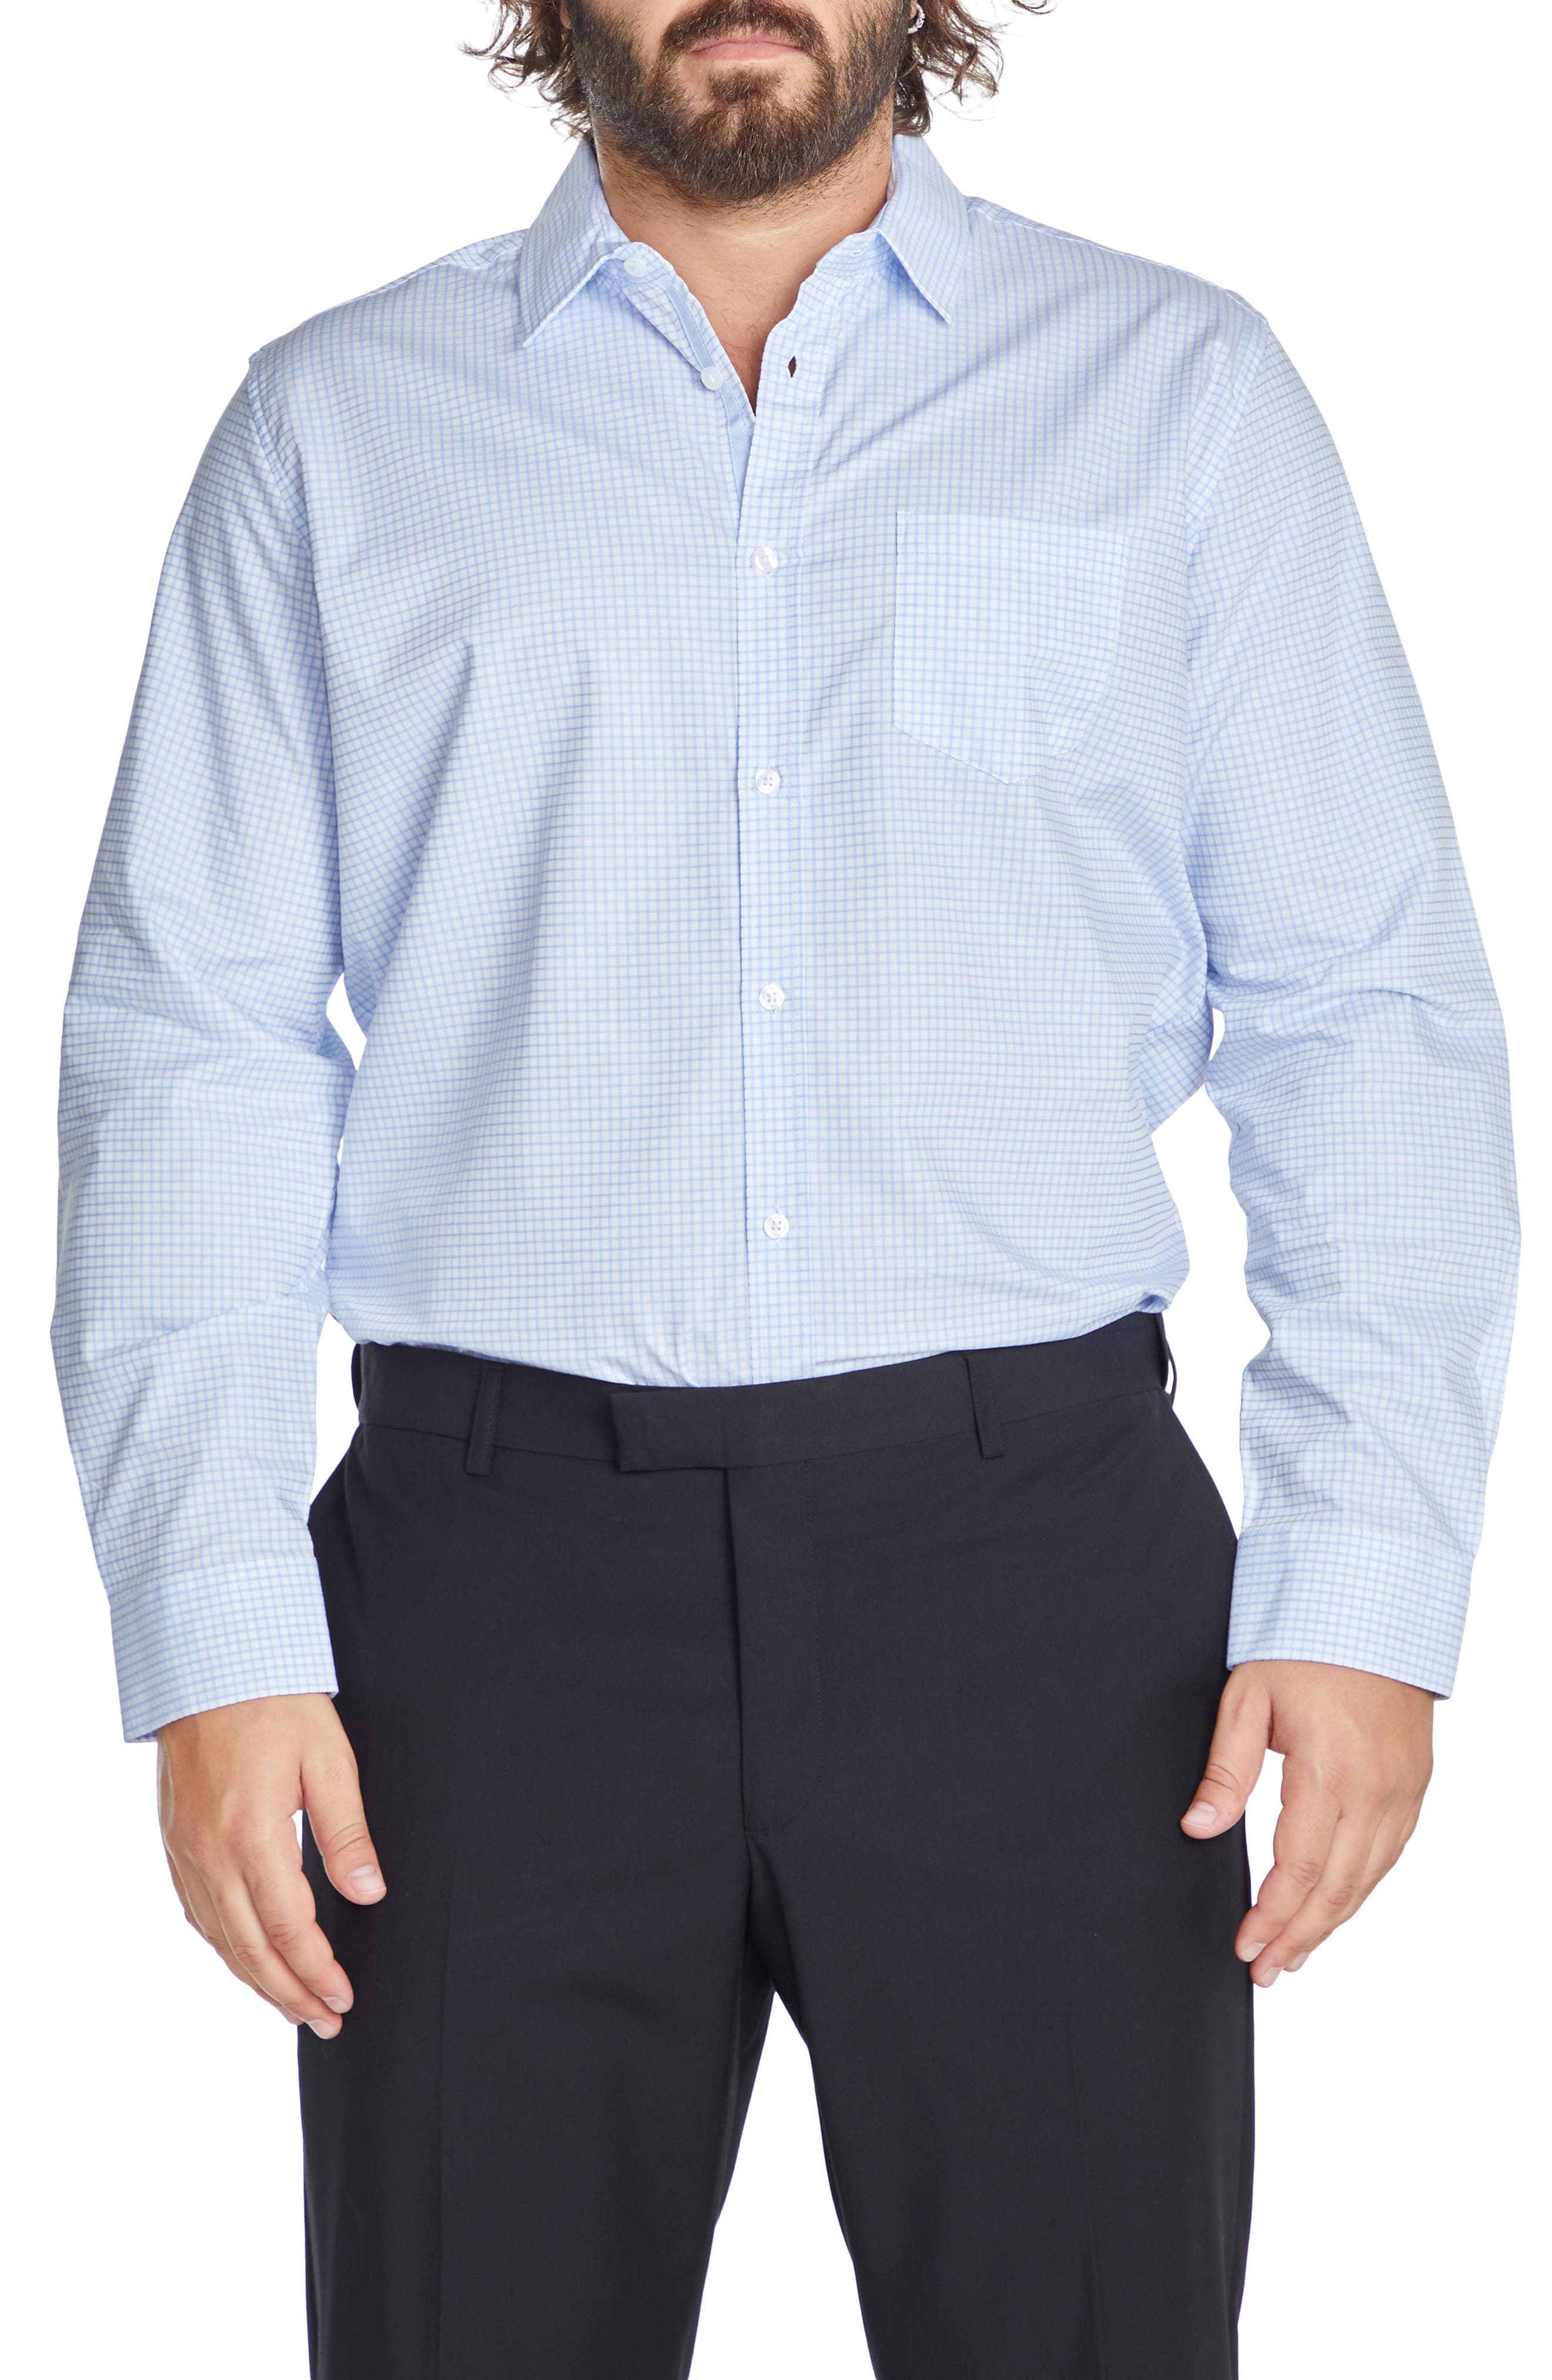 Sterling Check Button-Up Shirt